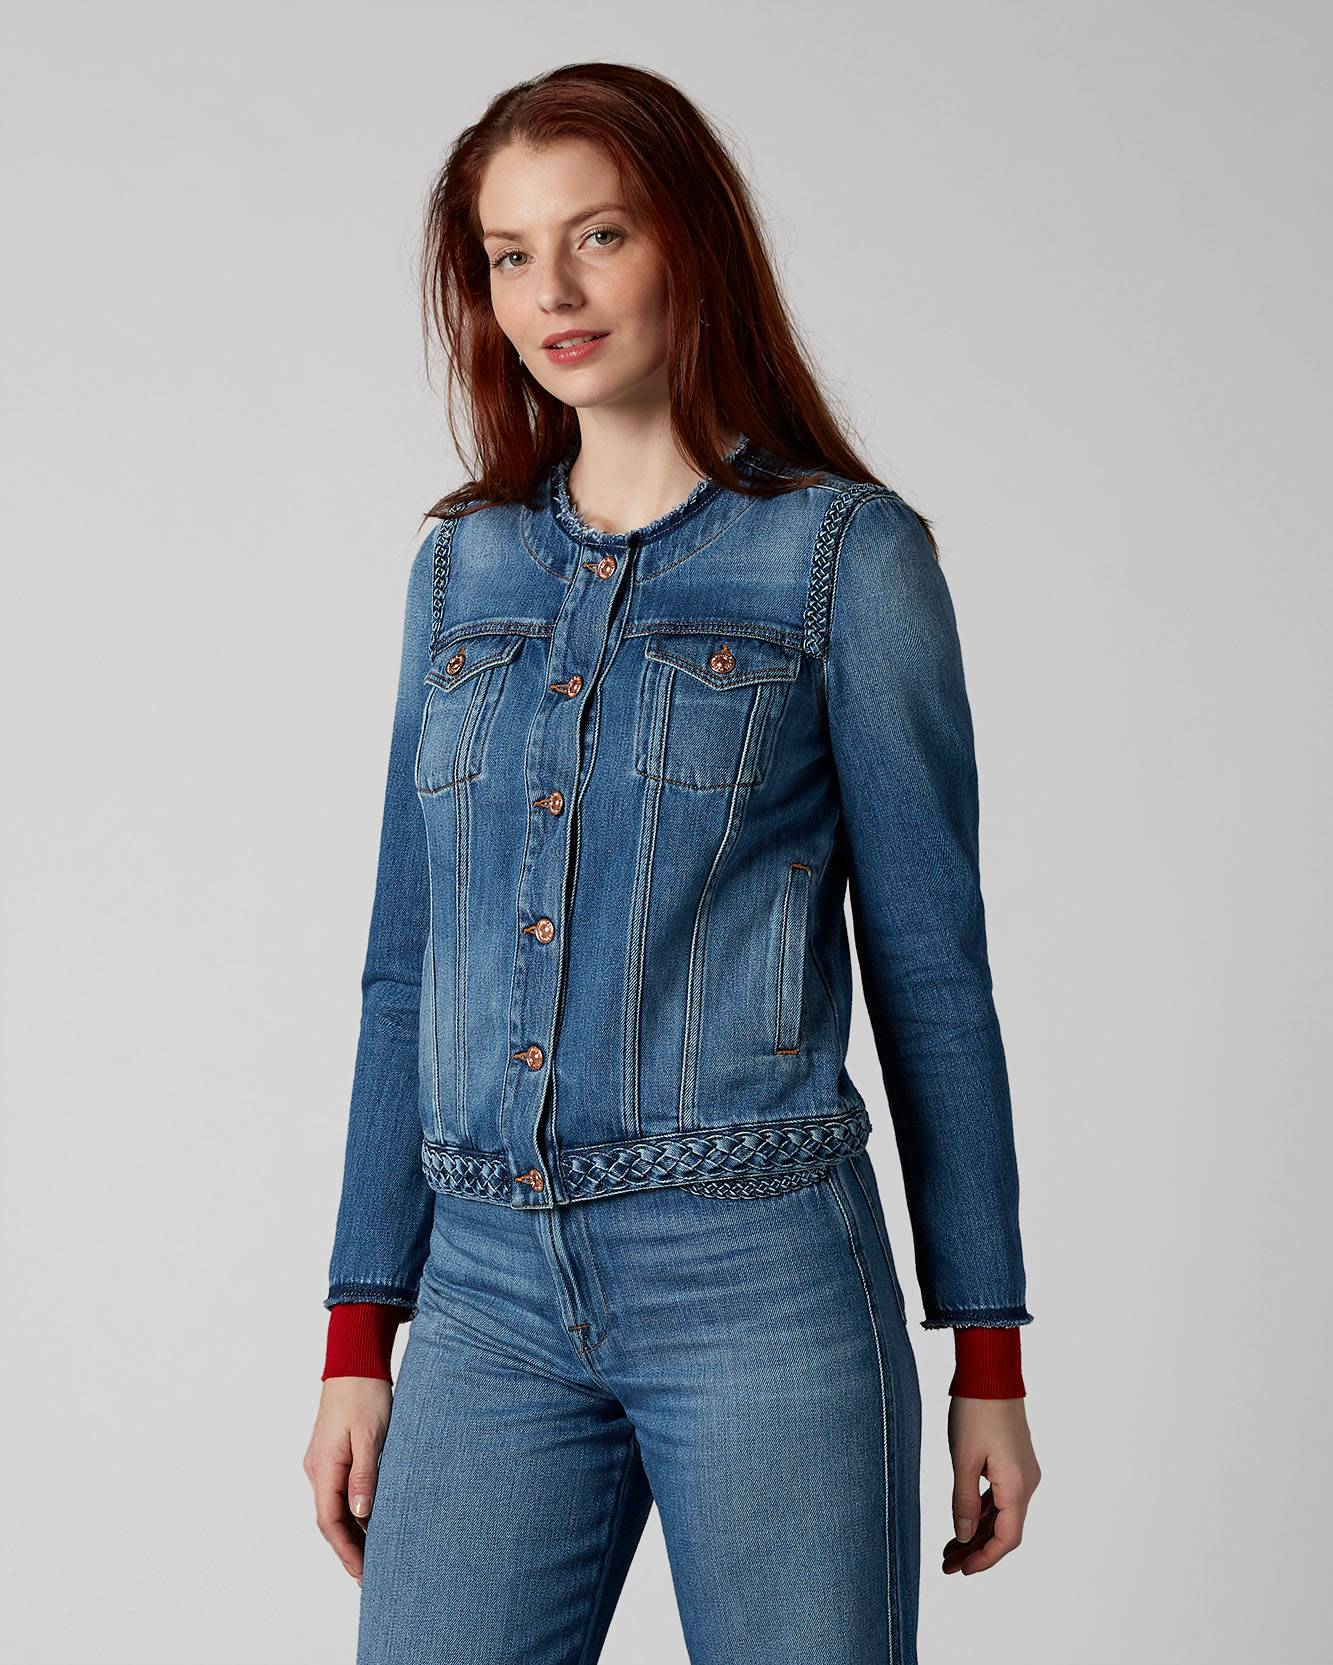 Premium Jeans, Denim Jackets & Clothing | 7 For All Mankind